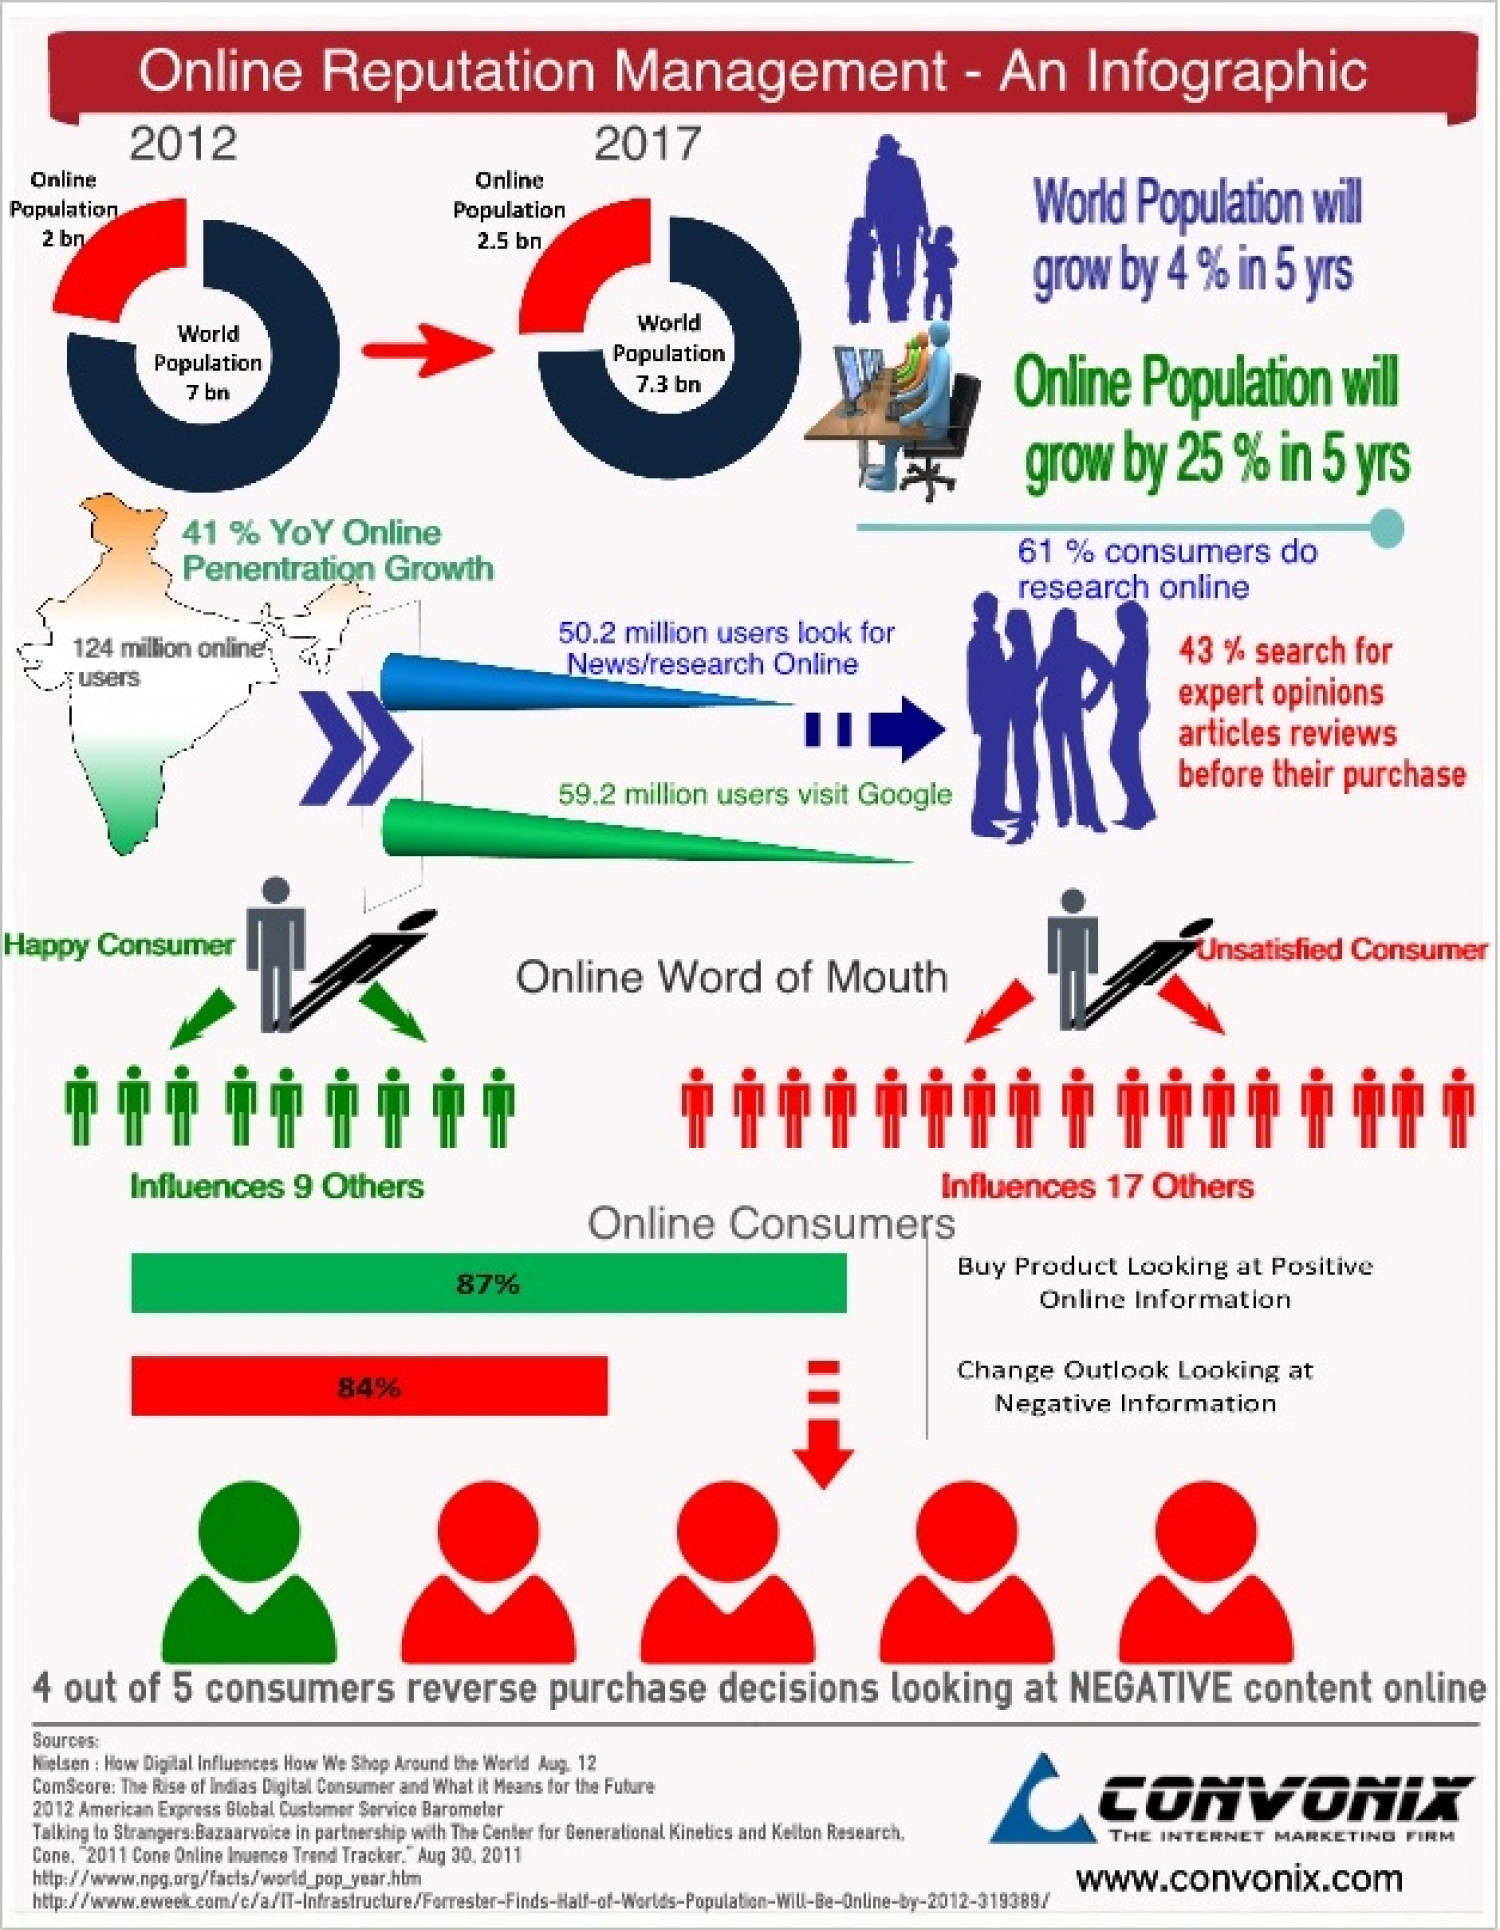 Online Reputation Management - The Need? Infographic